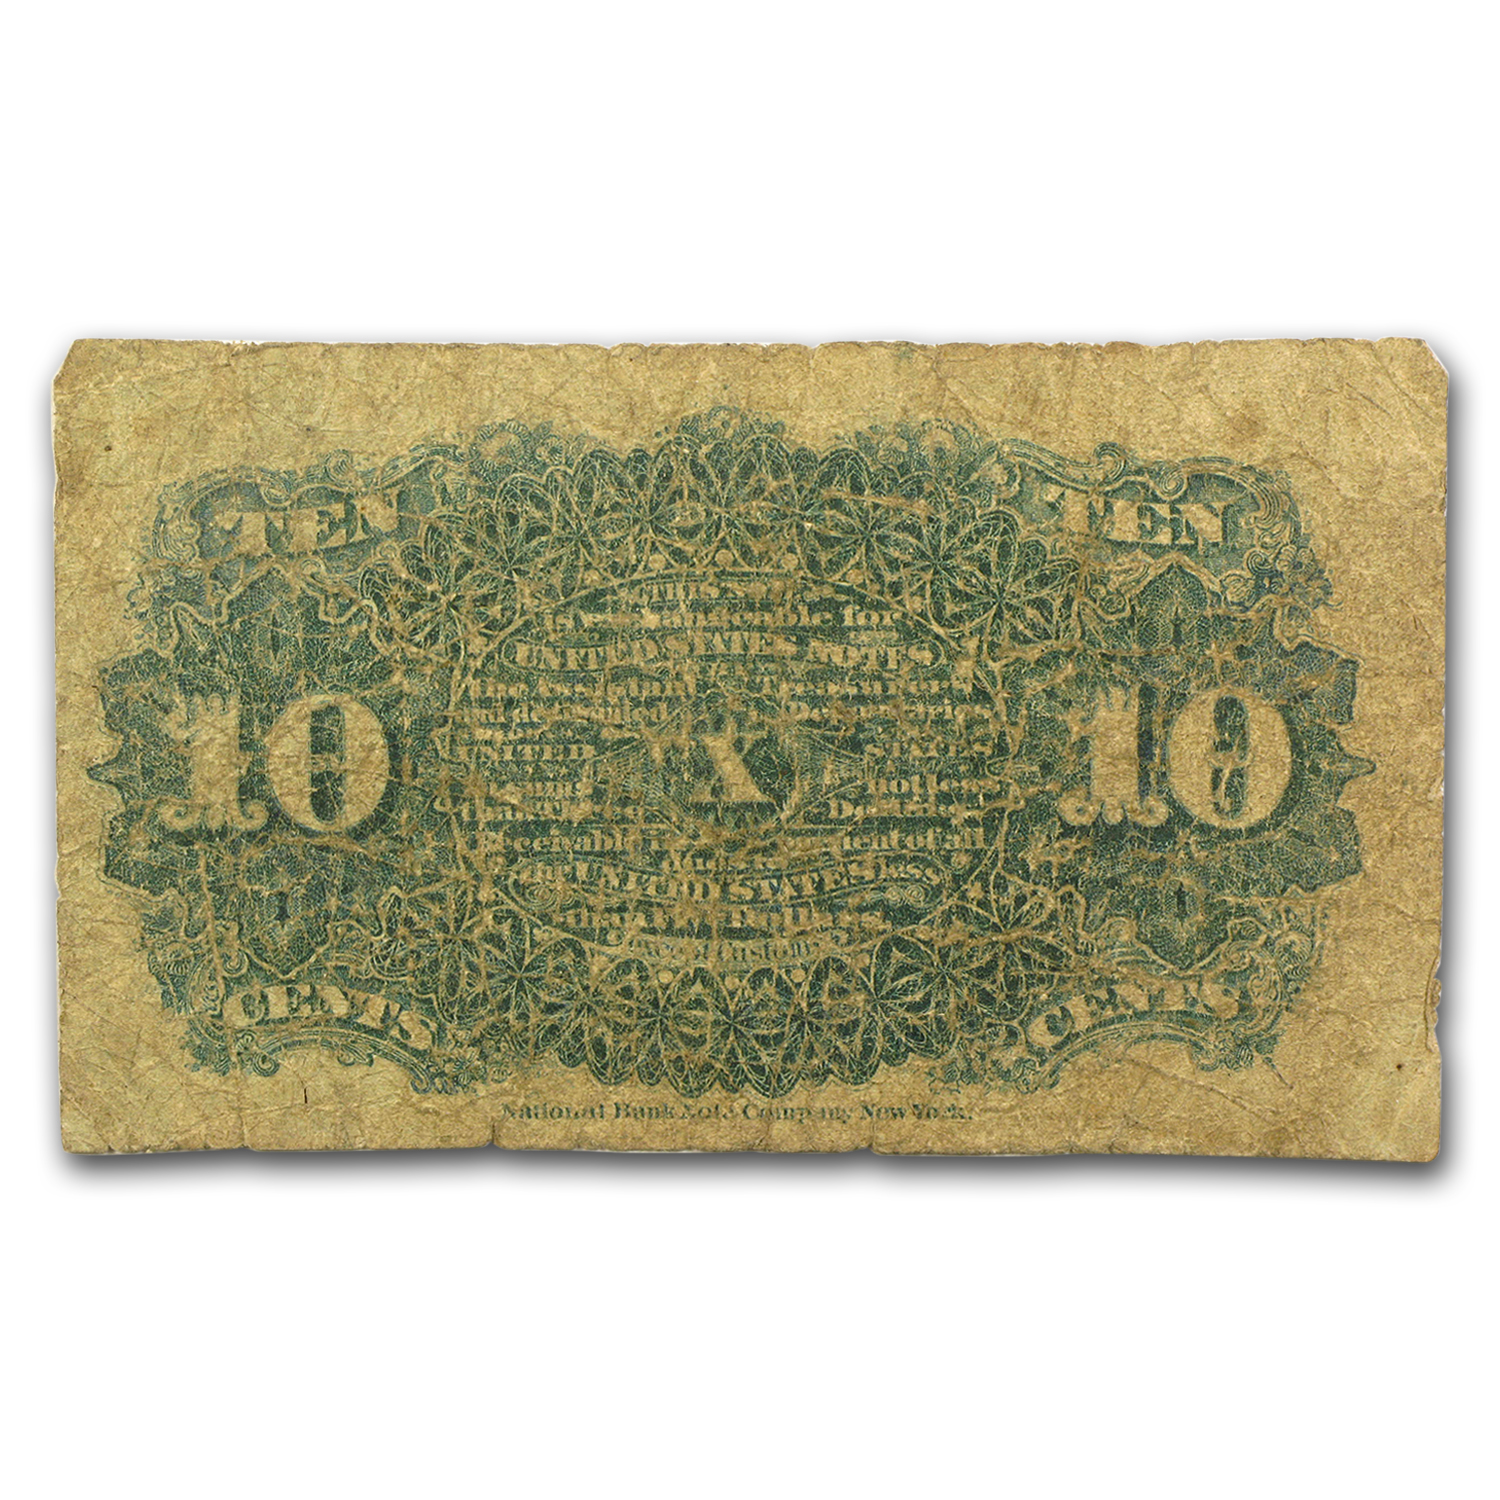 4th Issue Fractional Currency 10 Cents VG (FR#1257)